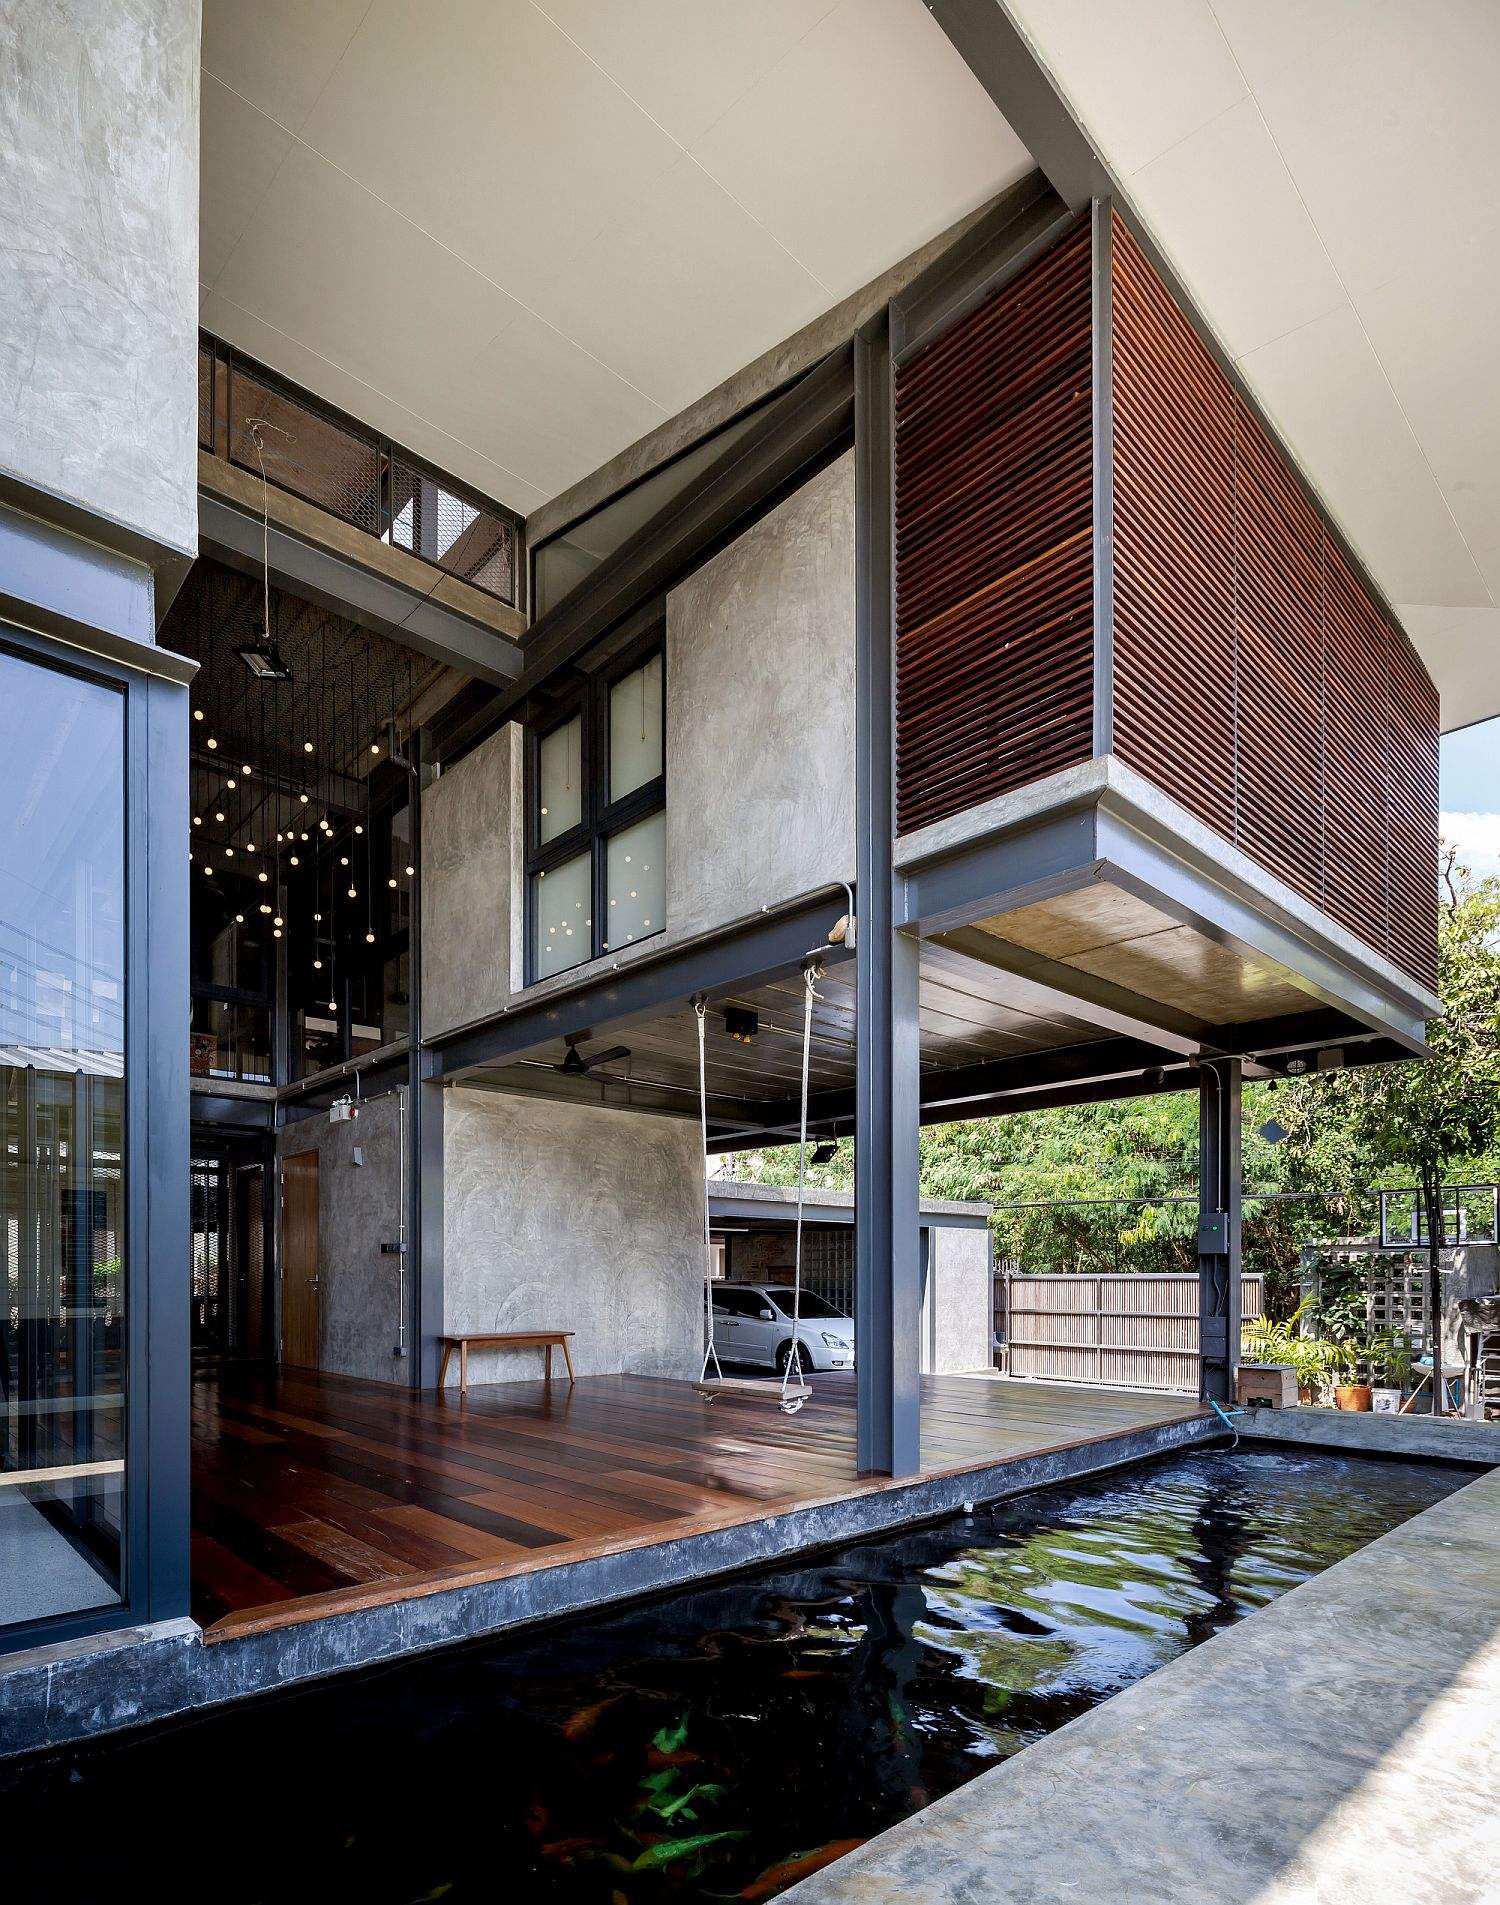 Cantilevered sections and smart cut-outs connect the landscape with the home further